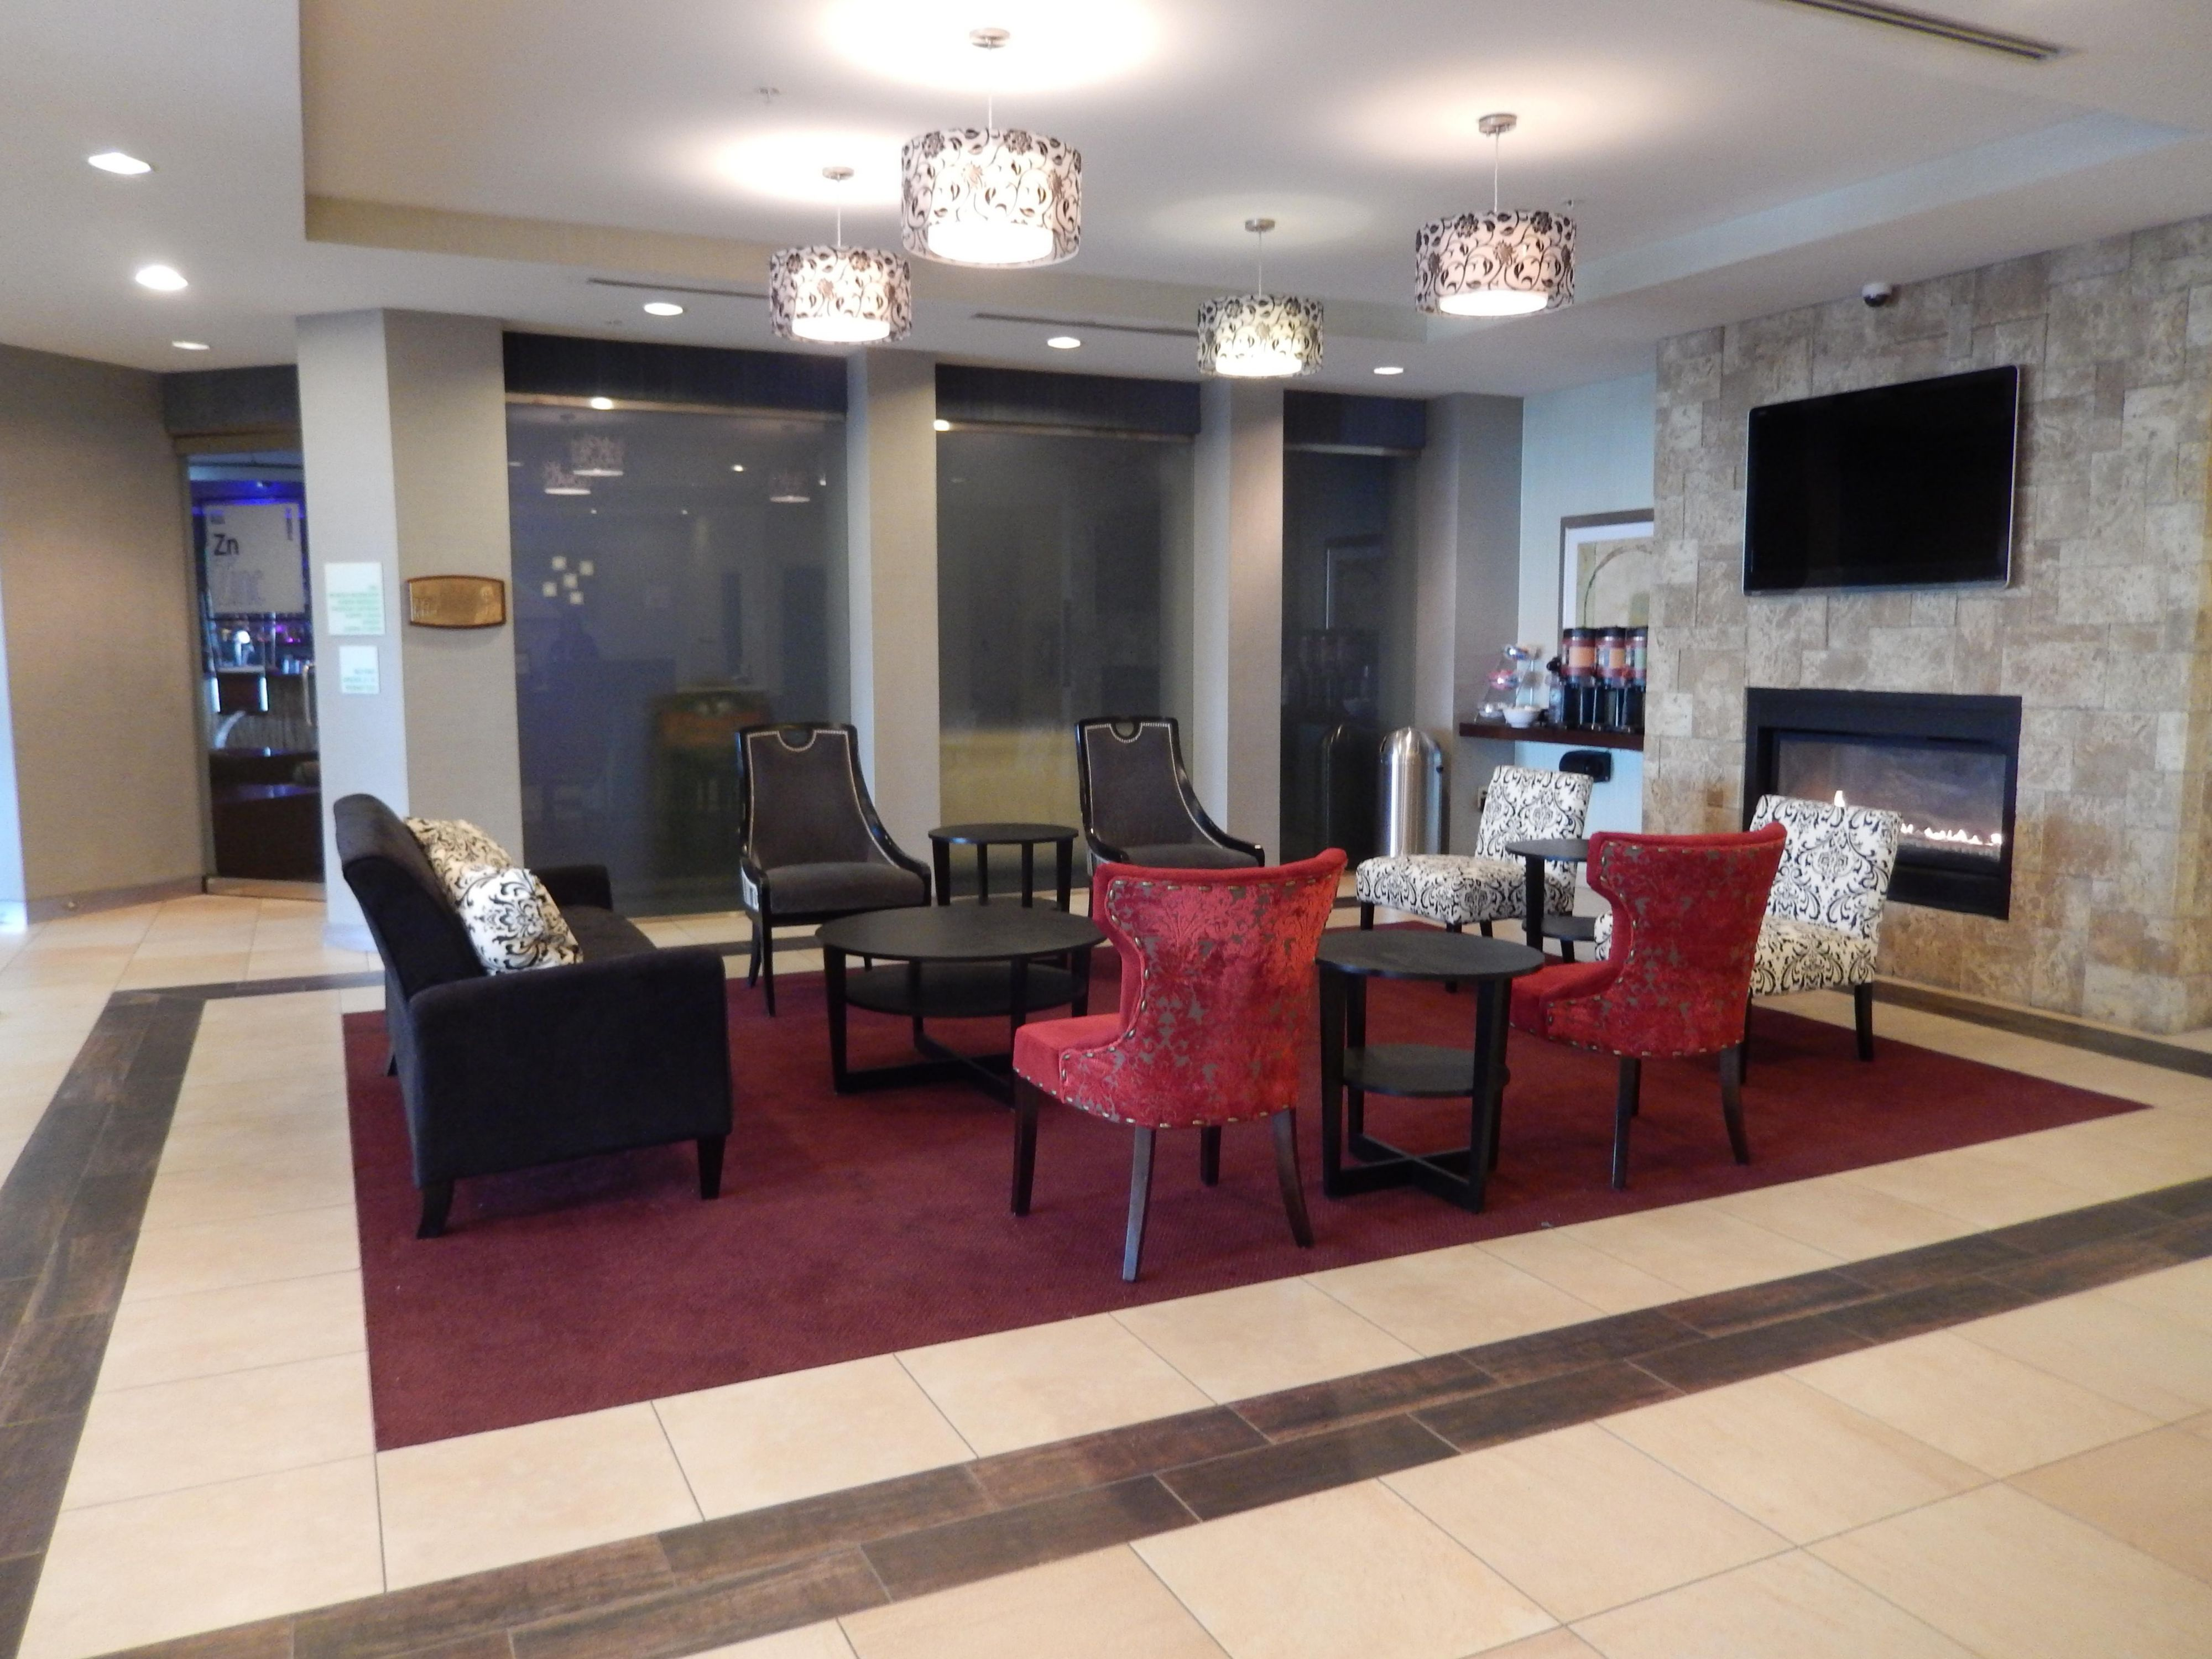 Our recently renovated lobby offers a great place to meet friends!